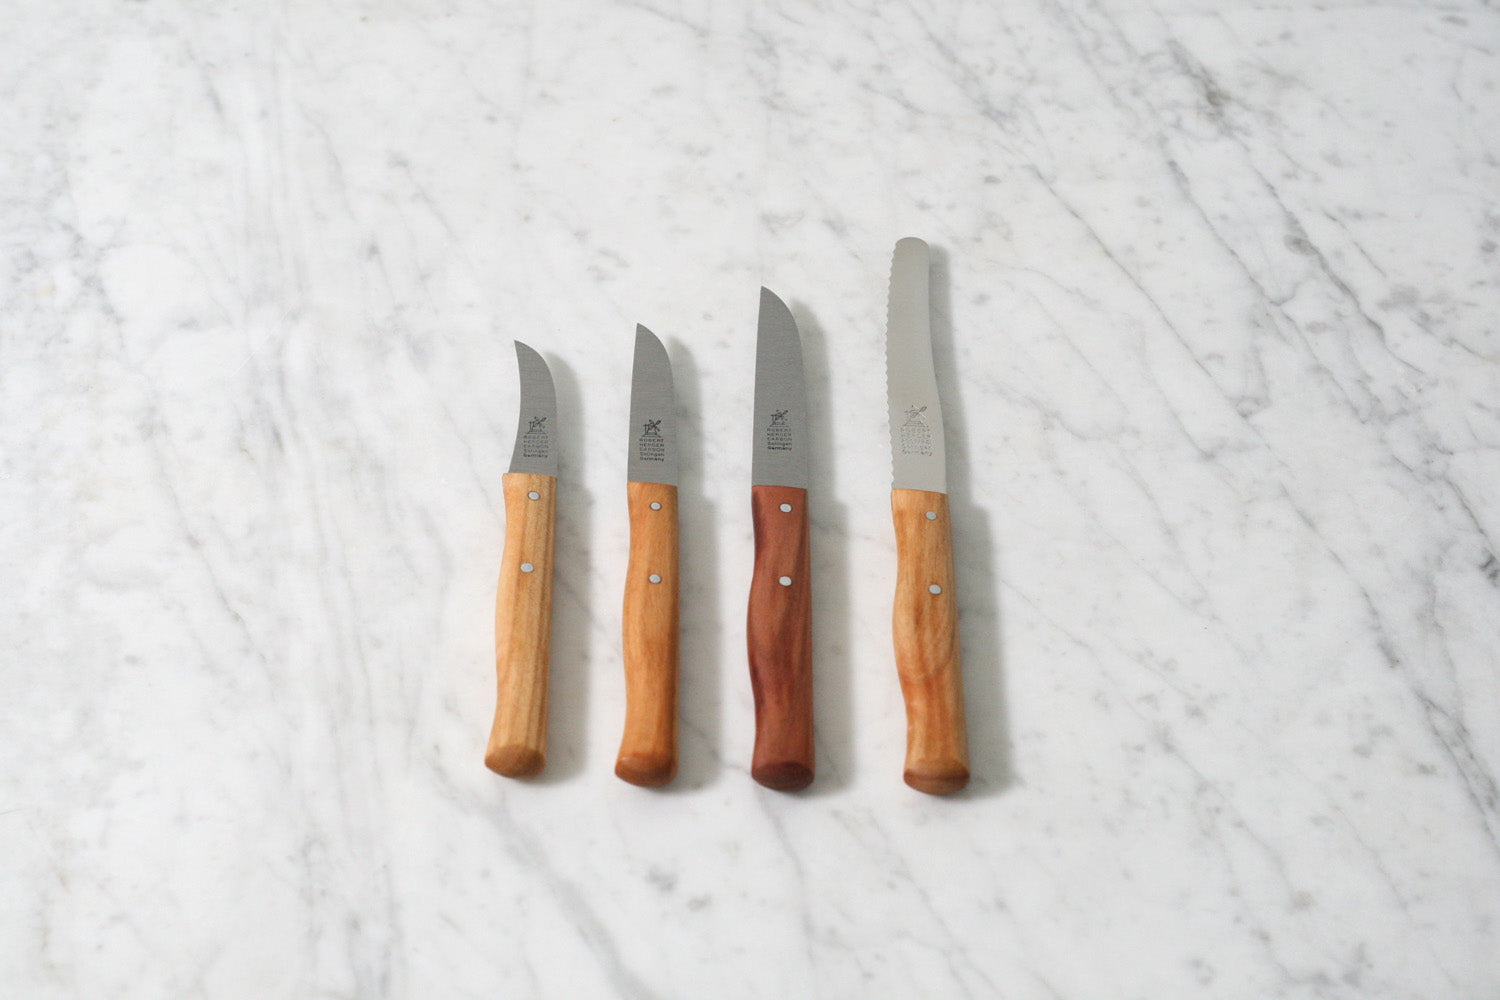 Robert Herder Small Classic Paring Knife